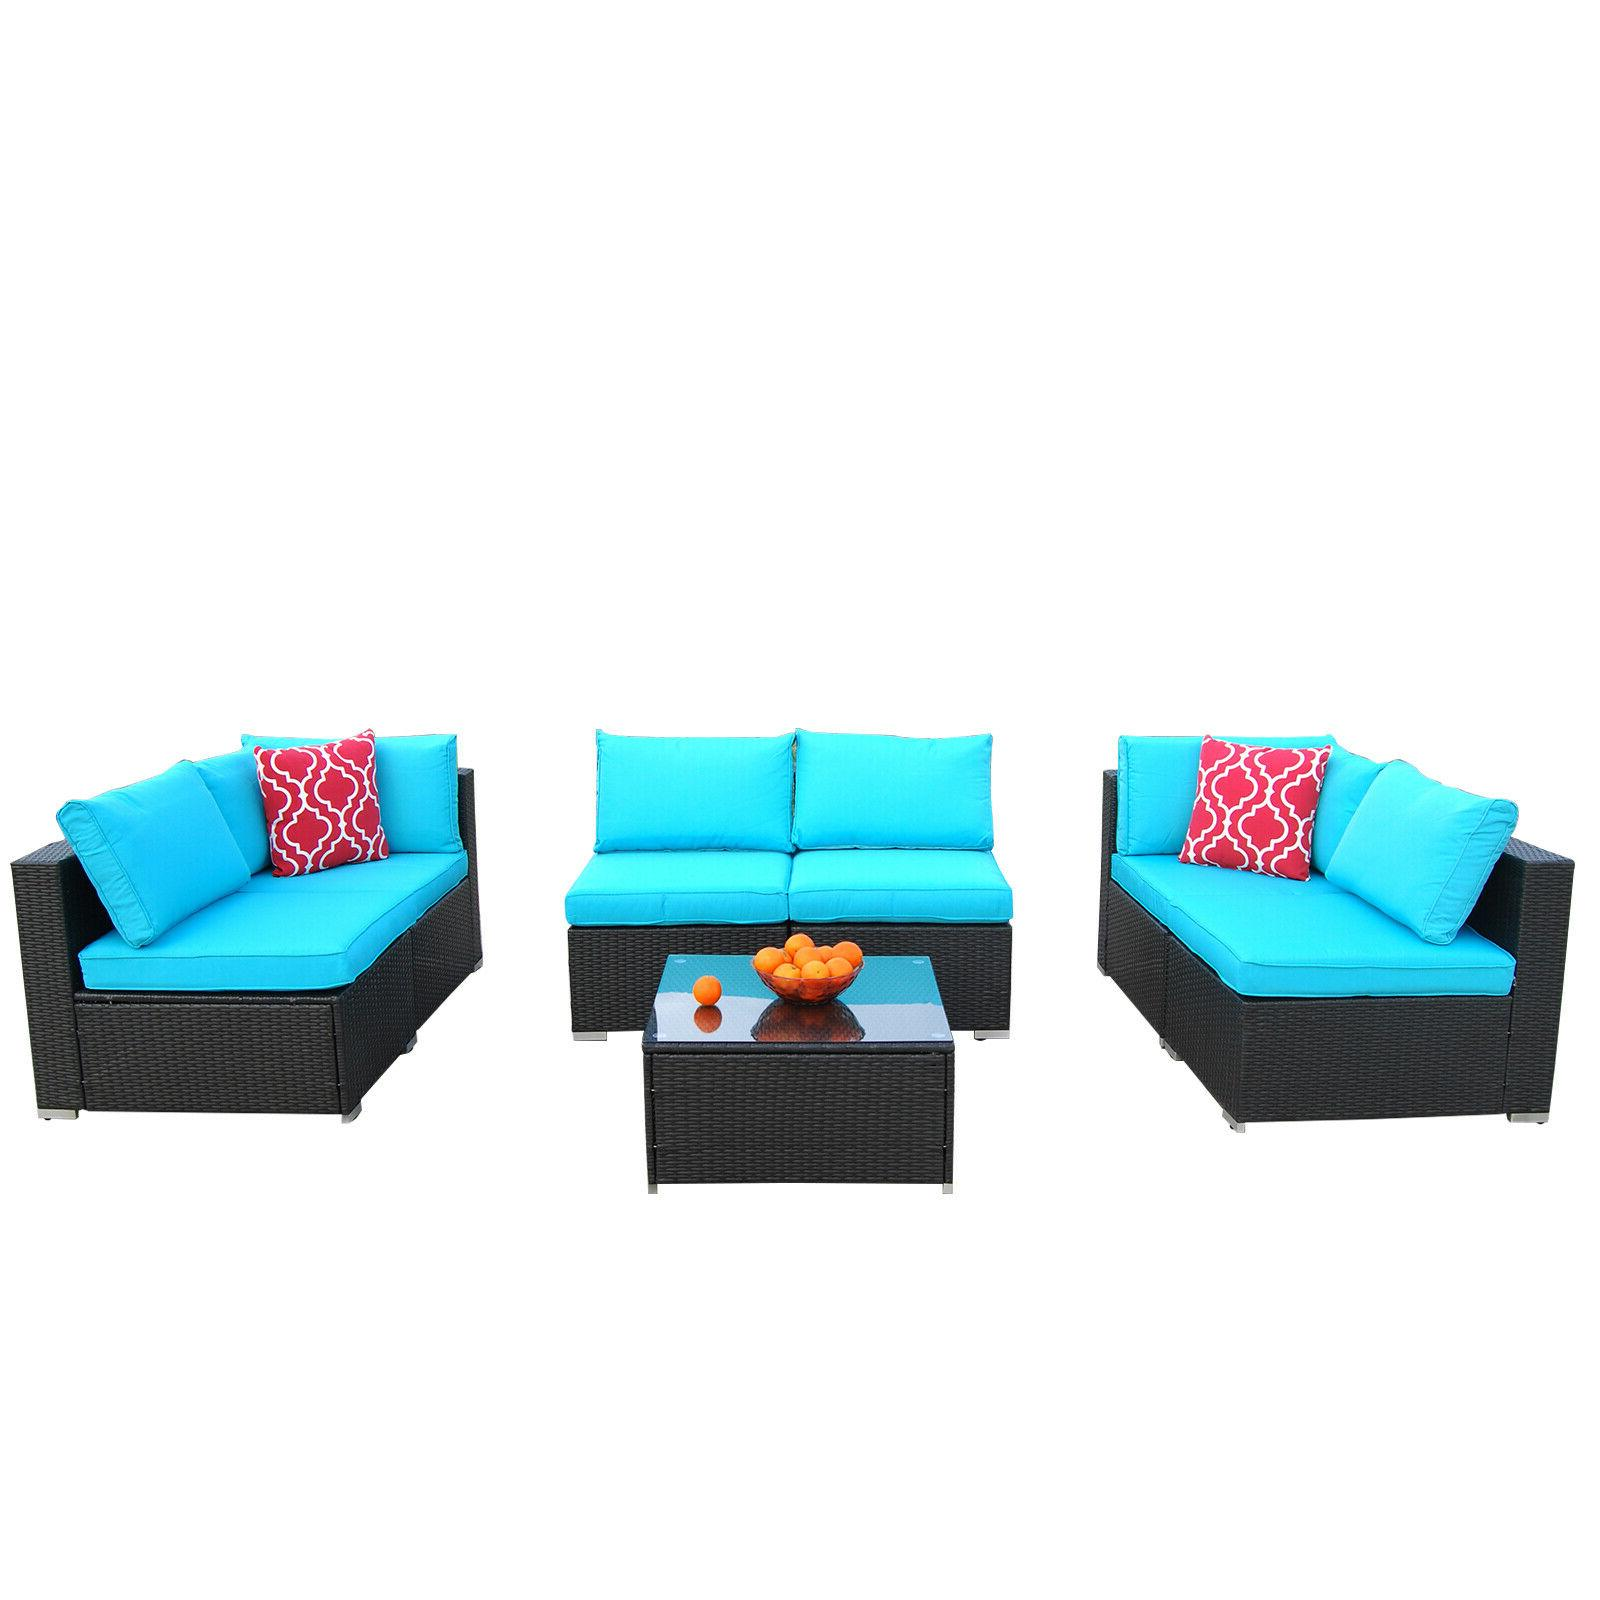 Set PE Rattan Furniture Conversation